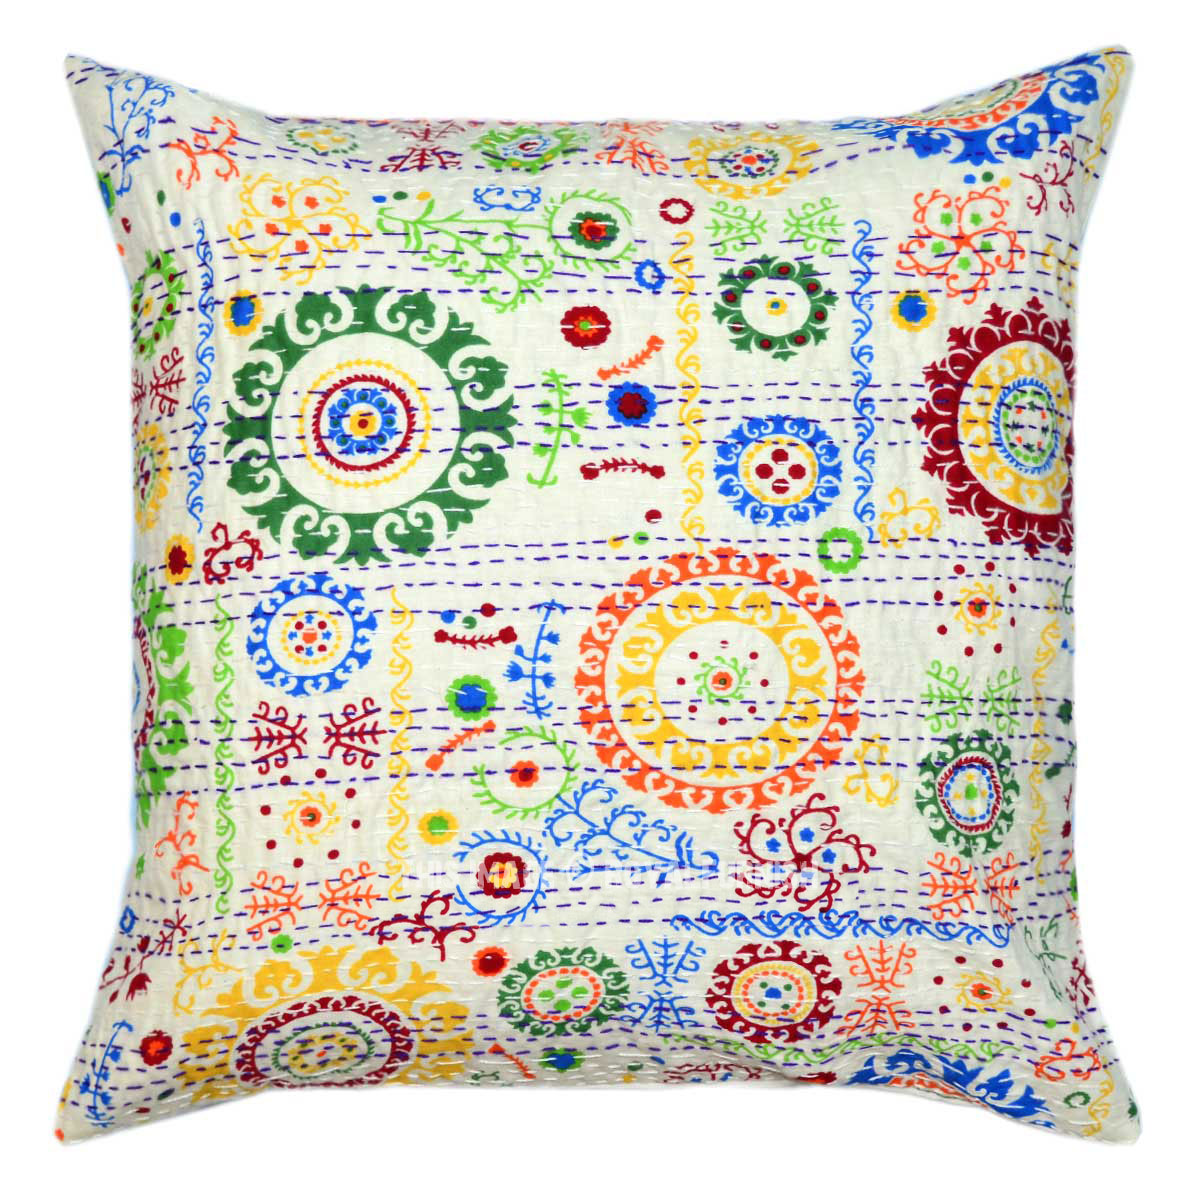 18X18 White Decorative Multi Round Circle Cotton Throw Pillow Cover - RoyalFurnish.com